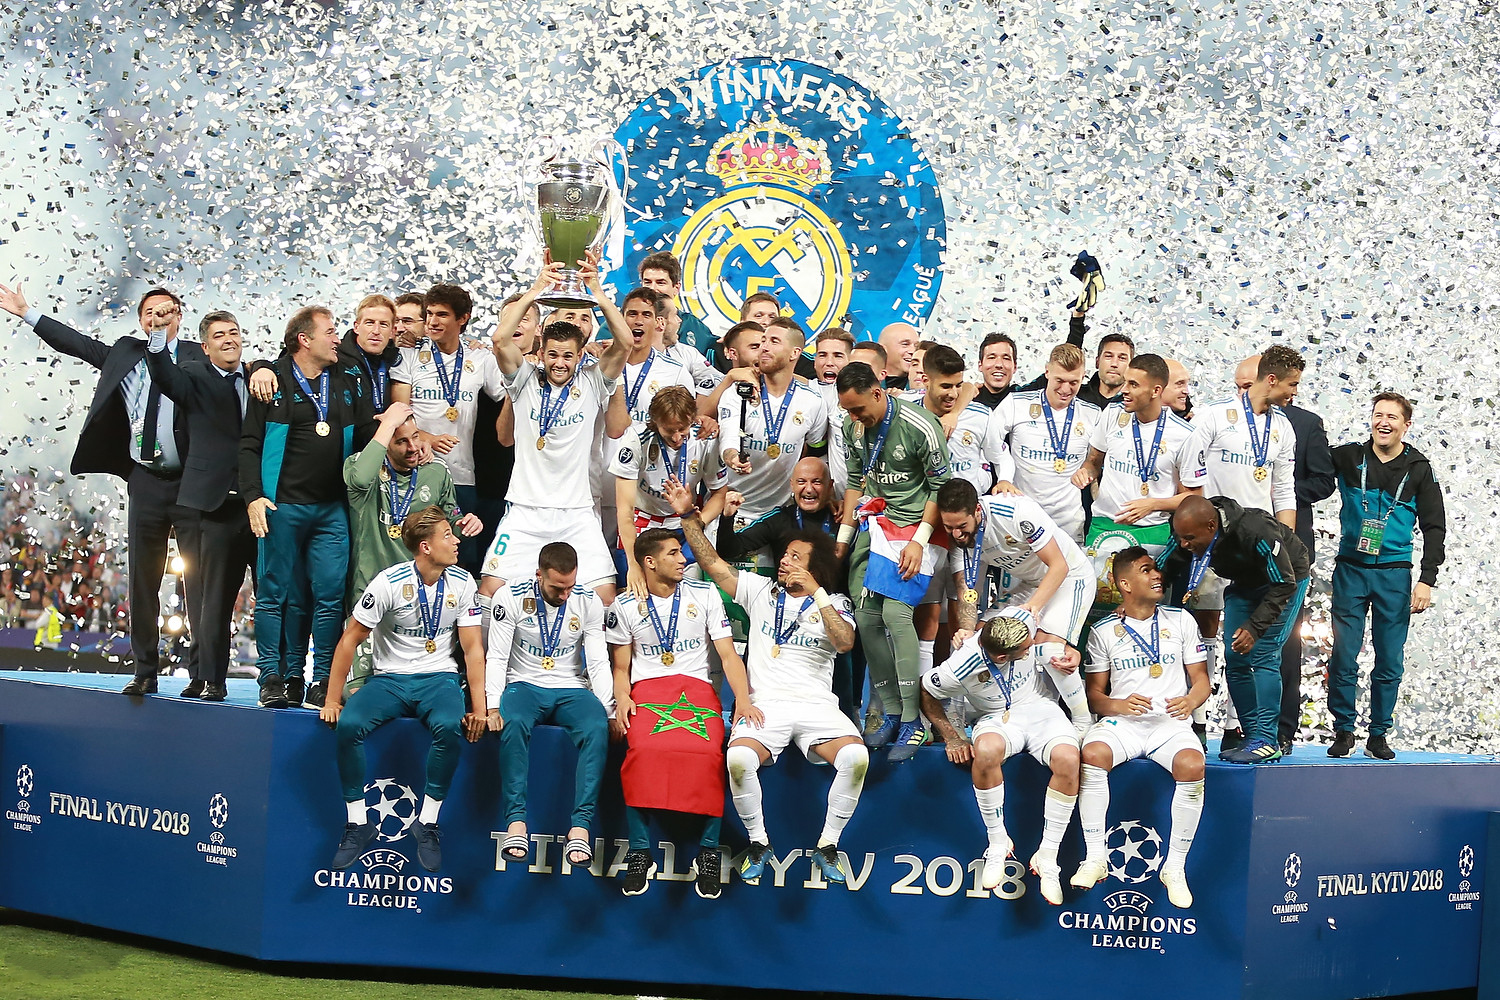 Real Madrid: Origin, History, Superstars, Achievements and Facts